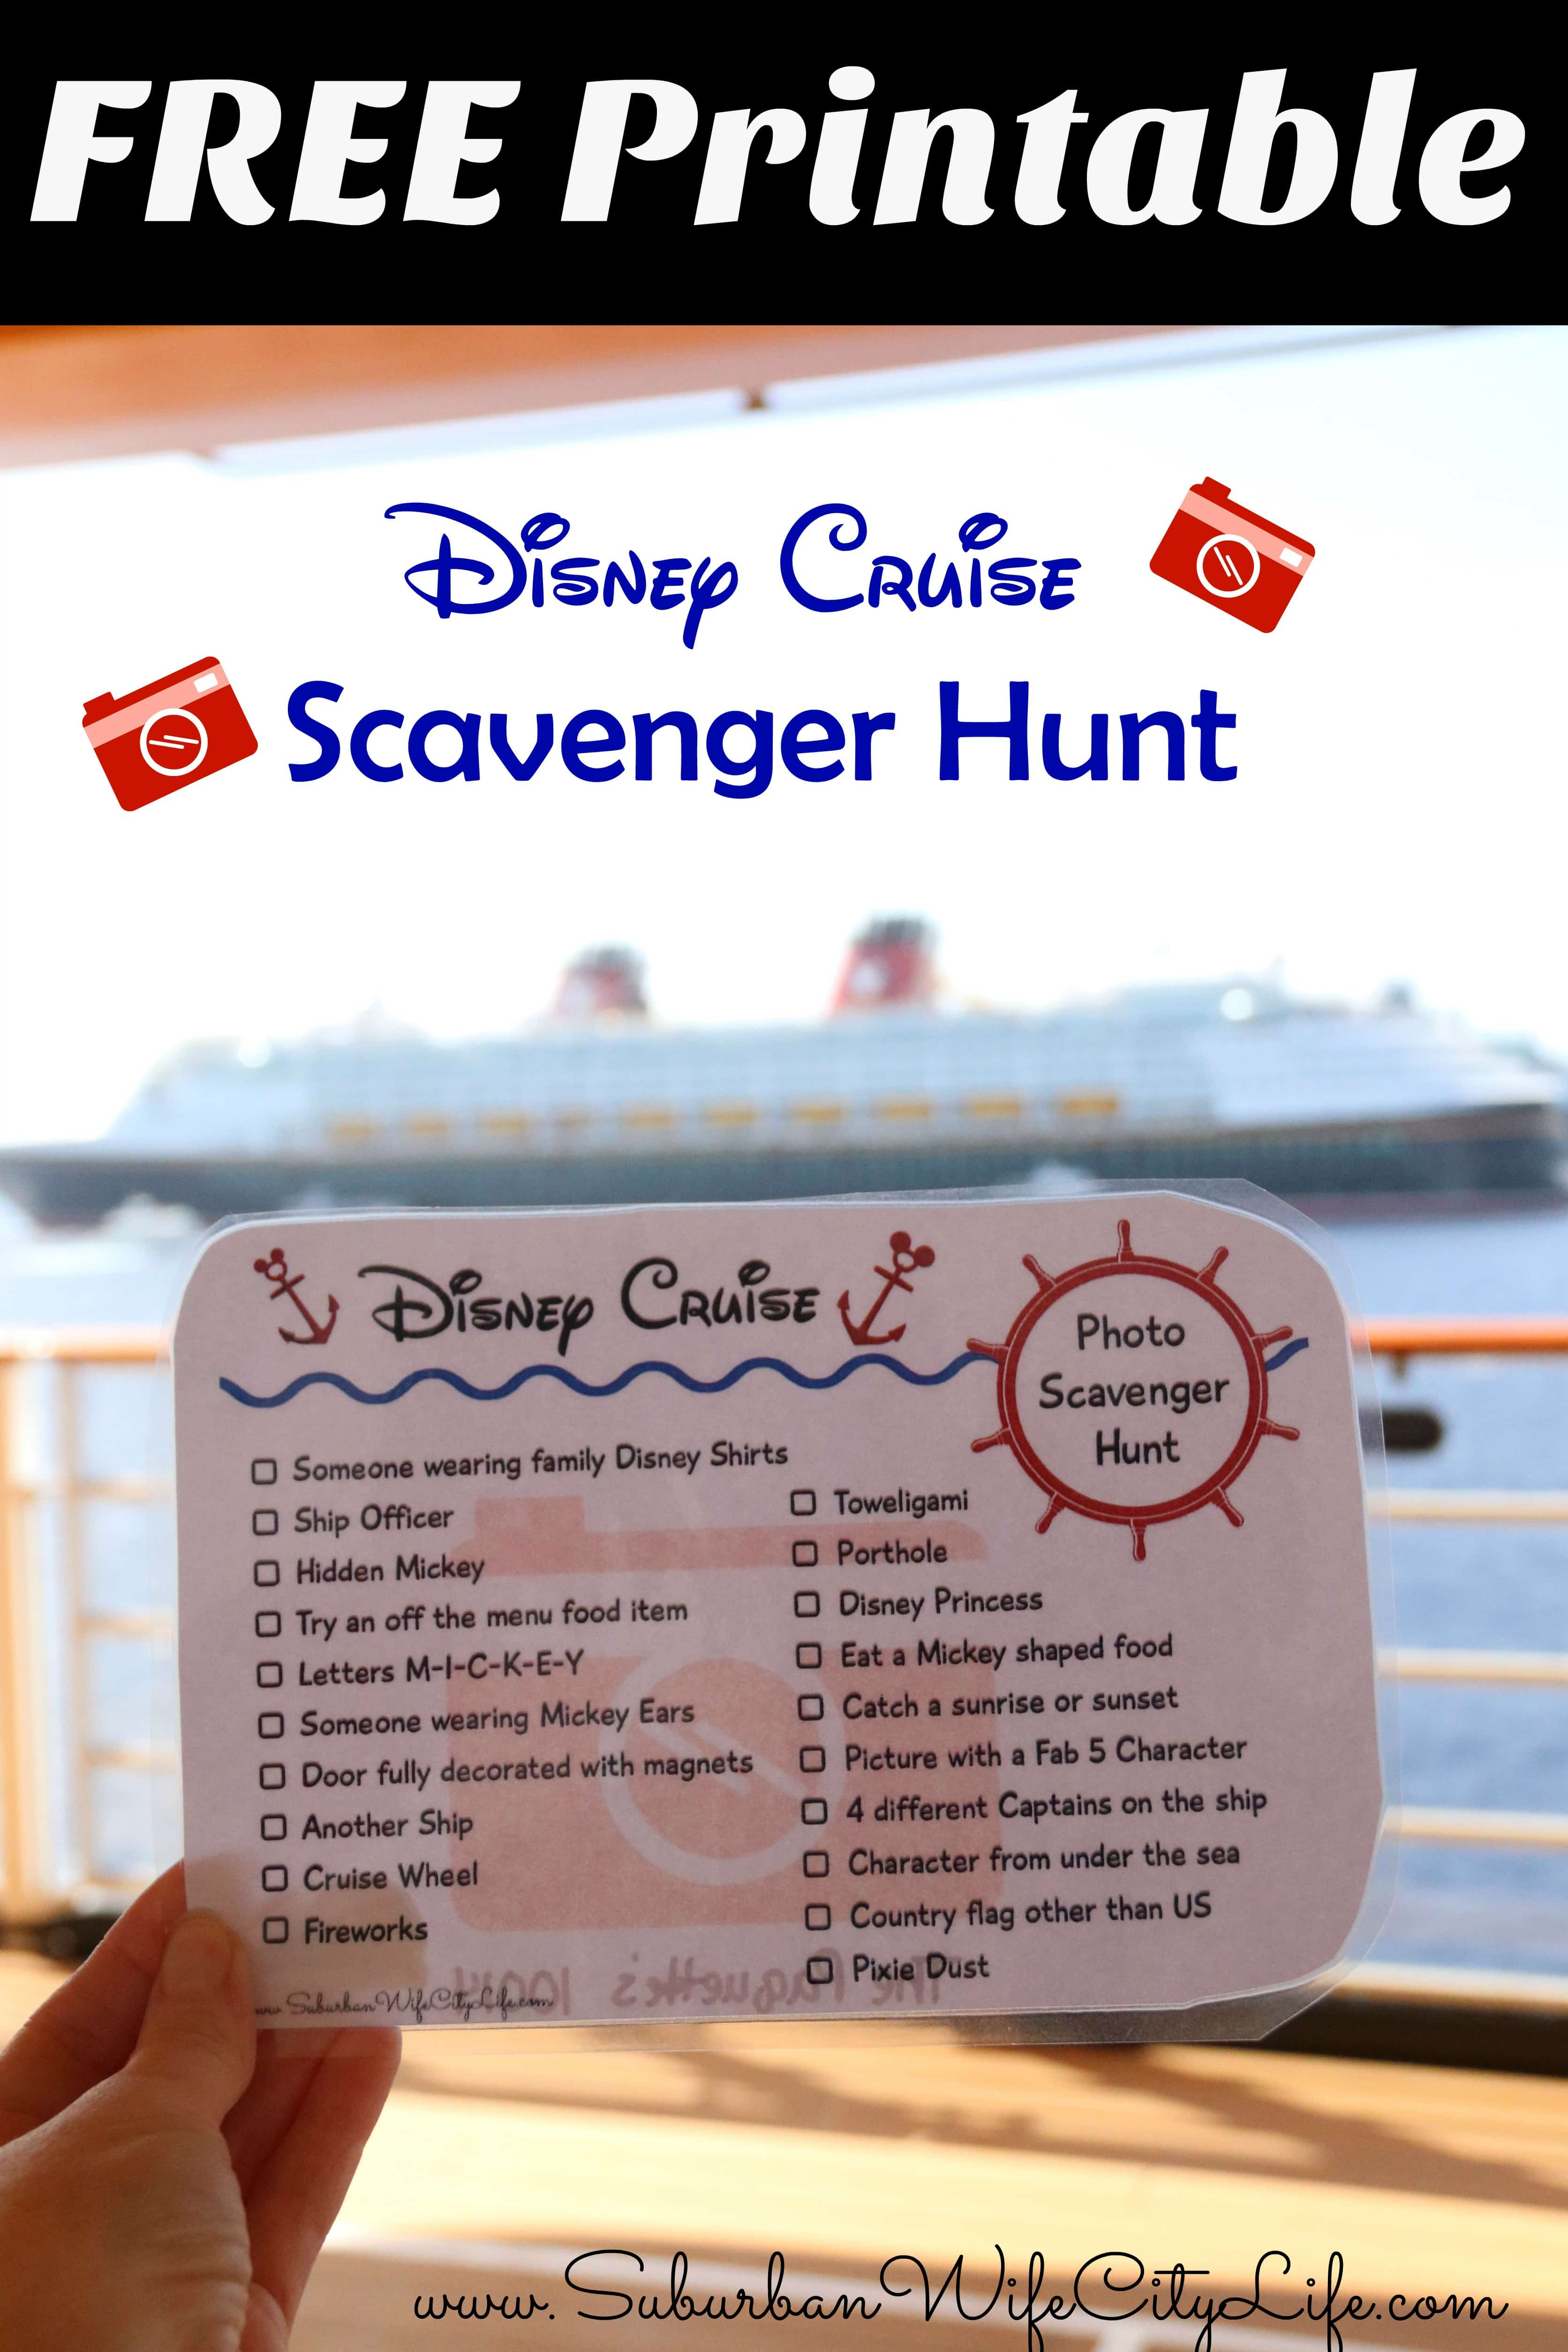 Disney Cruise Photo Scavenger Hunt – Free Printable